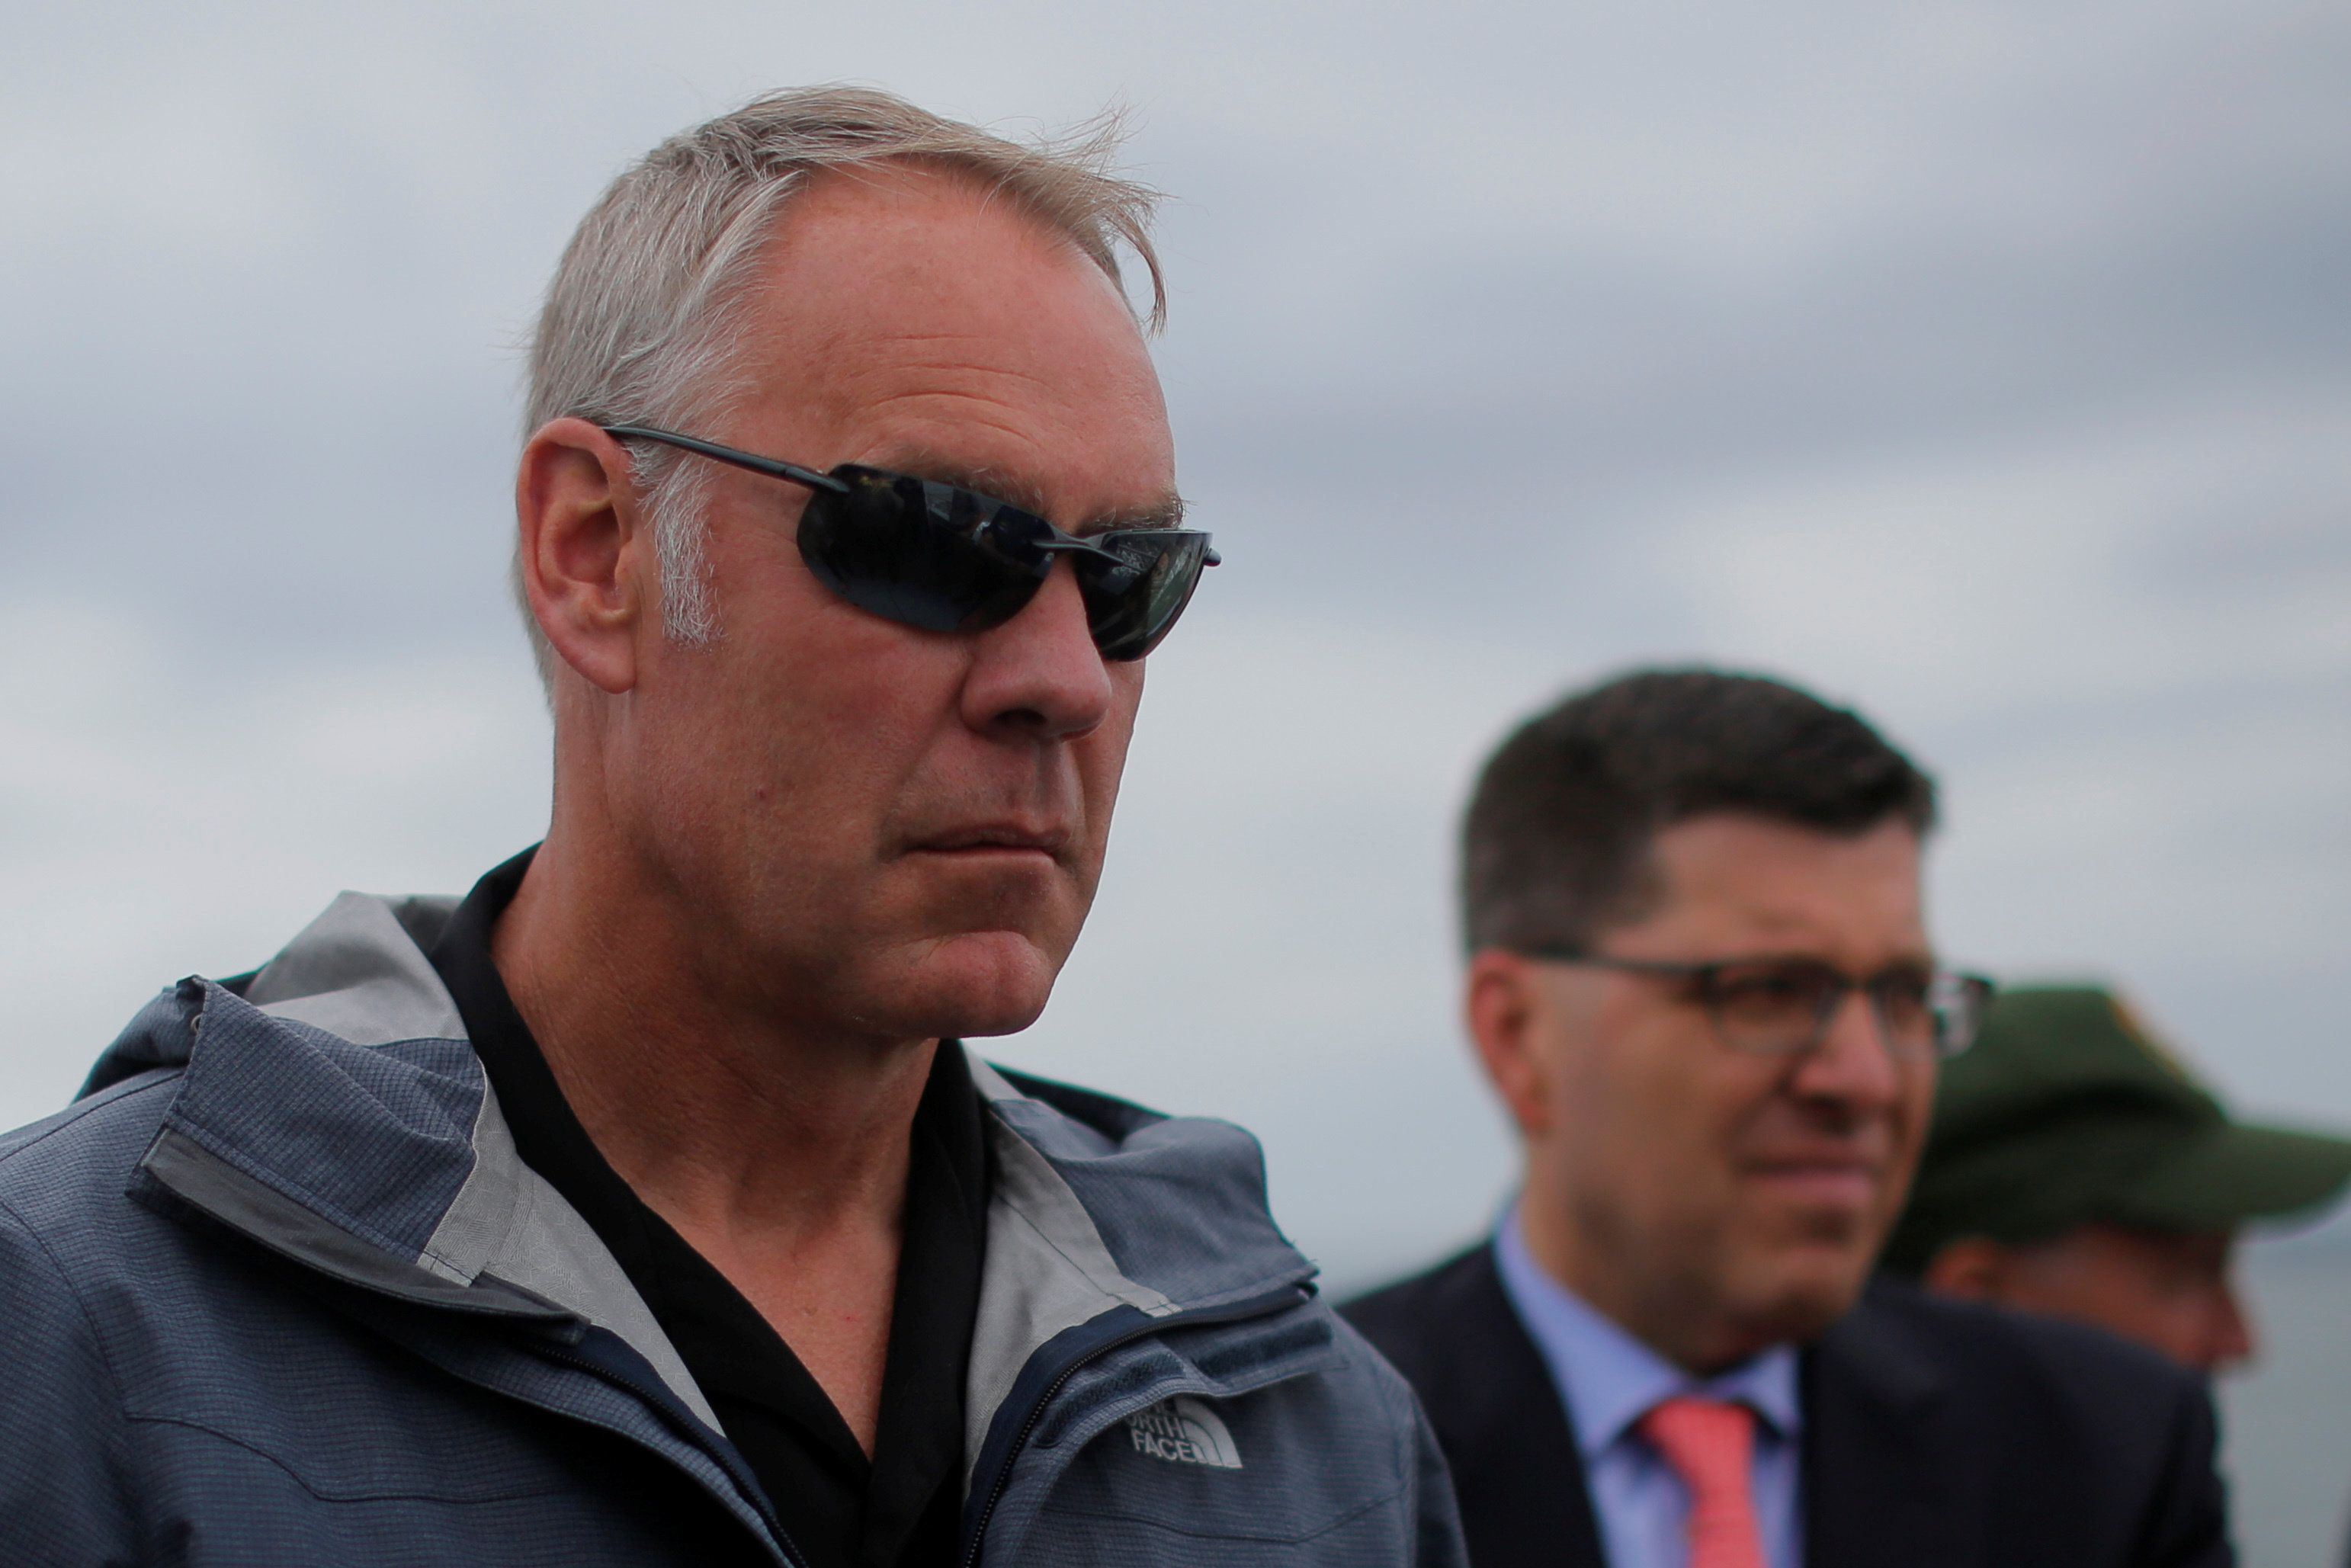 U.S. Interior Secretary Ryan Zinke rides a boat to Georges Island, while traveling for his National Monuments Review process, in Boston Harbor, Massachusetts, U.S., June 16, 2017.  Picture taken June 16, 2017.   REUTERS/Brian Snyder